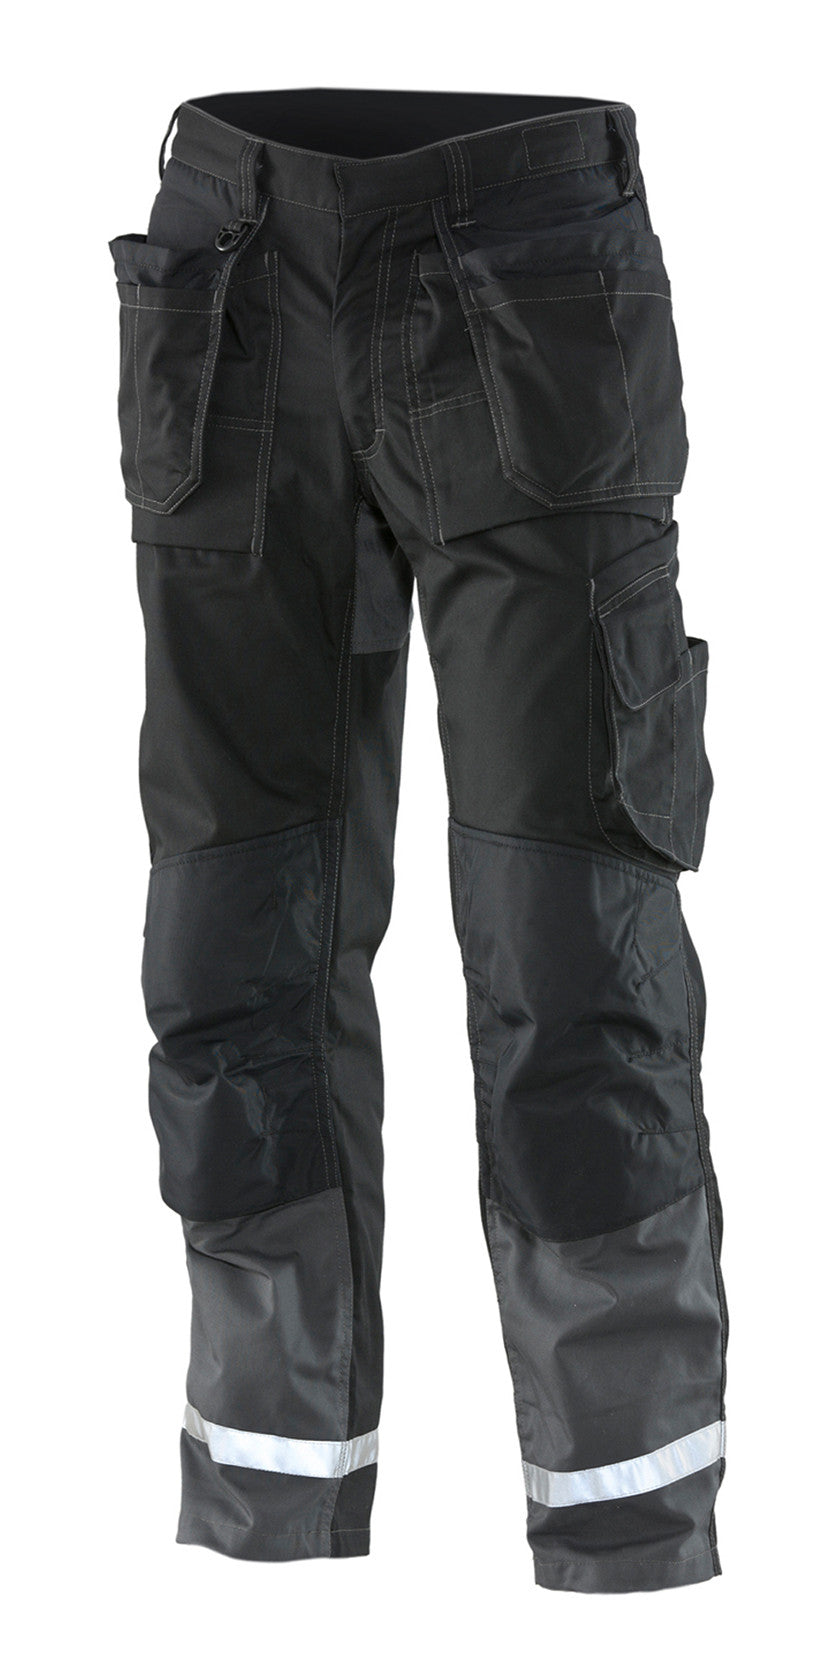 Multi Functional Service Trousers | Technical 2403 Jobman Workwear